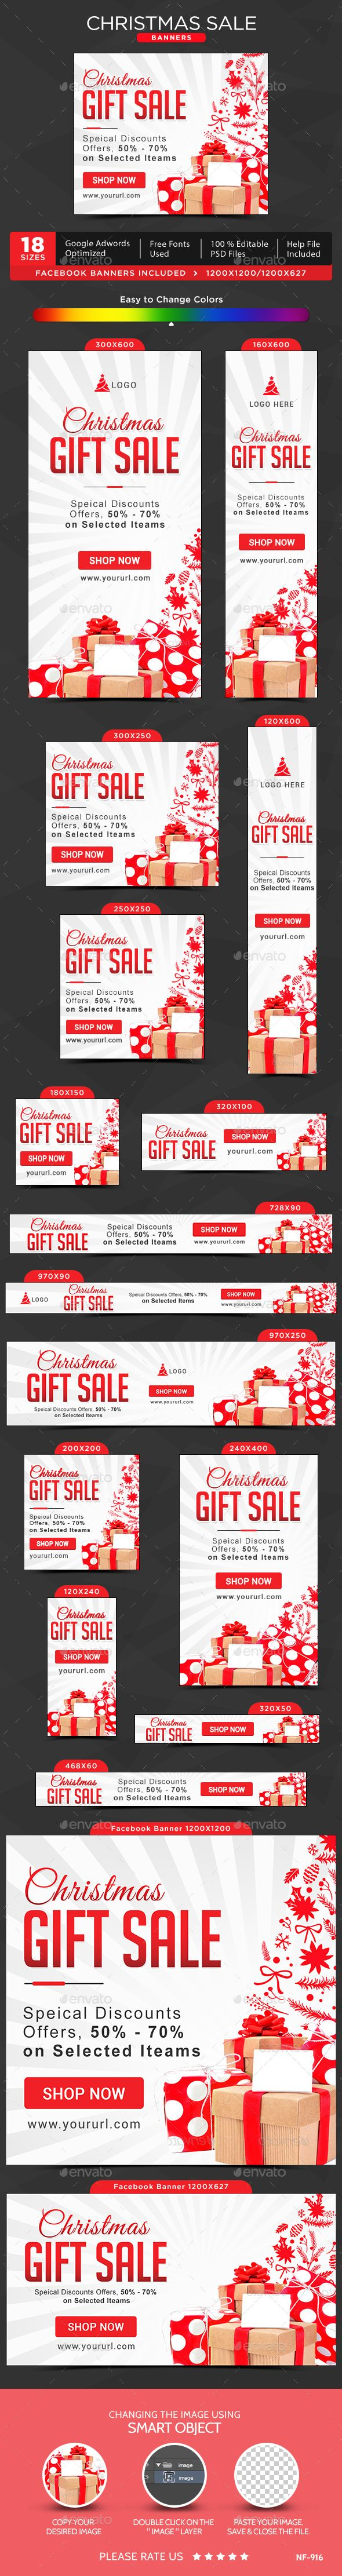 Merry Christmas Web Banners Template PSD #design #ads #xmas Download: http://graphicriver.net/item/christmas-banners/14032785?ref=ksioks